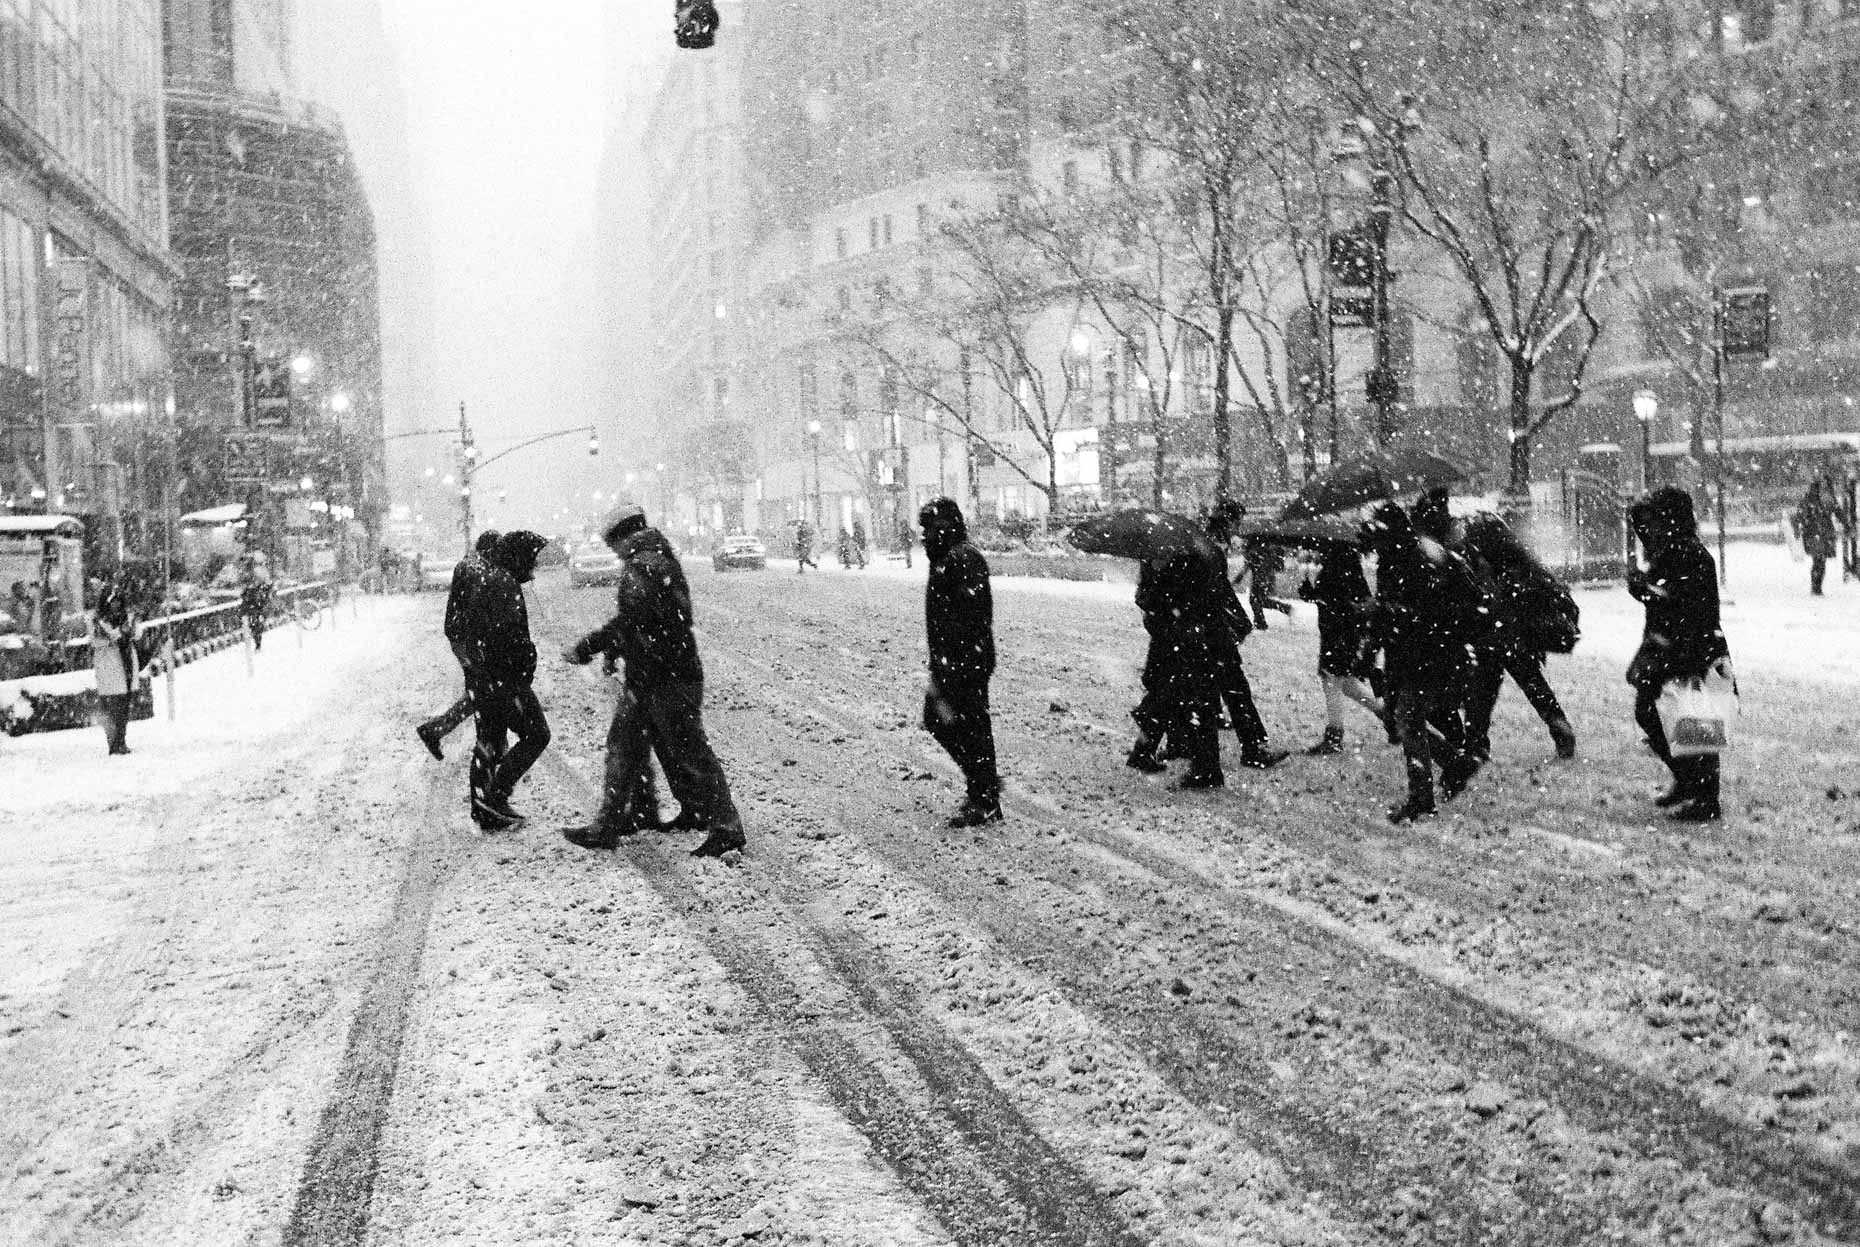 New York City Commuters cross 7th ave in a blizzard.